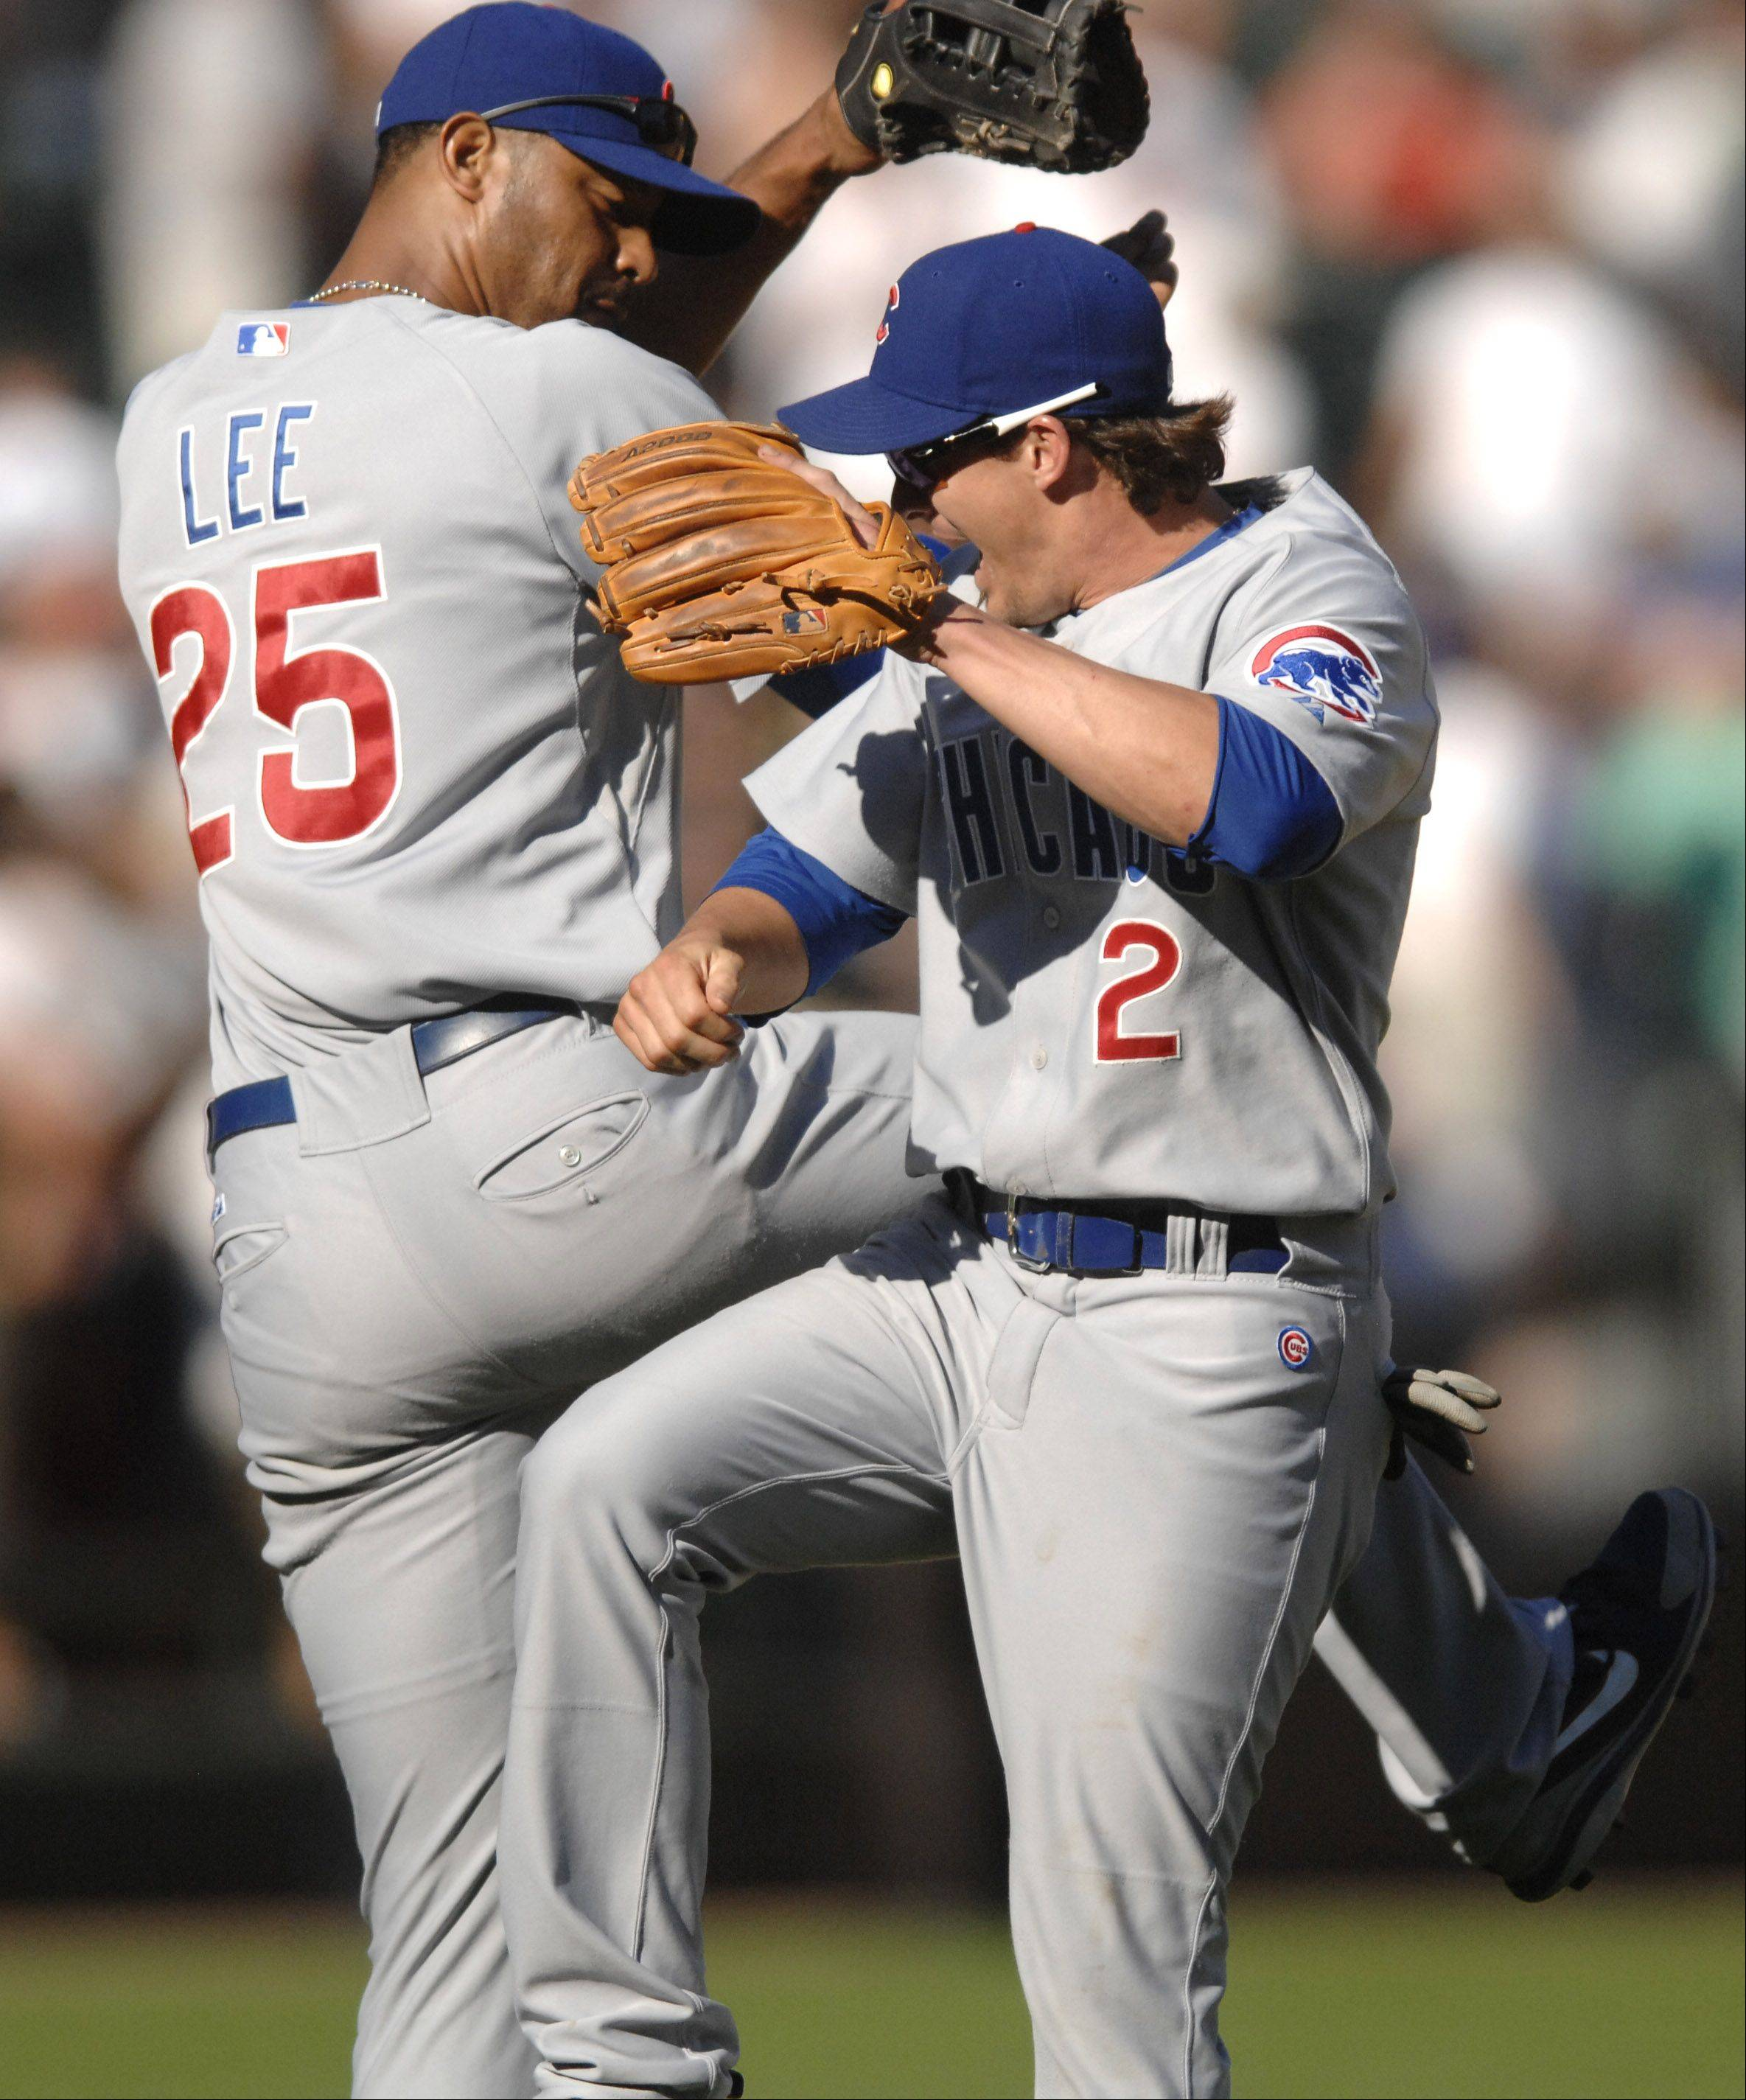 Chicago Cubs' Derrek Lee and Ryan Theriot celebrate after their win over the Sox in the Crosstown Classic at U.S. Cellular Field on Friday, June 26.